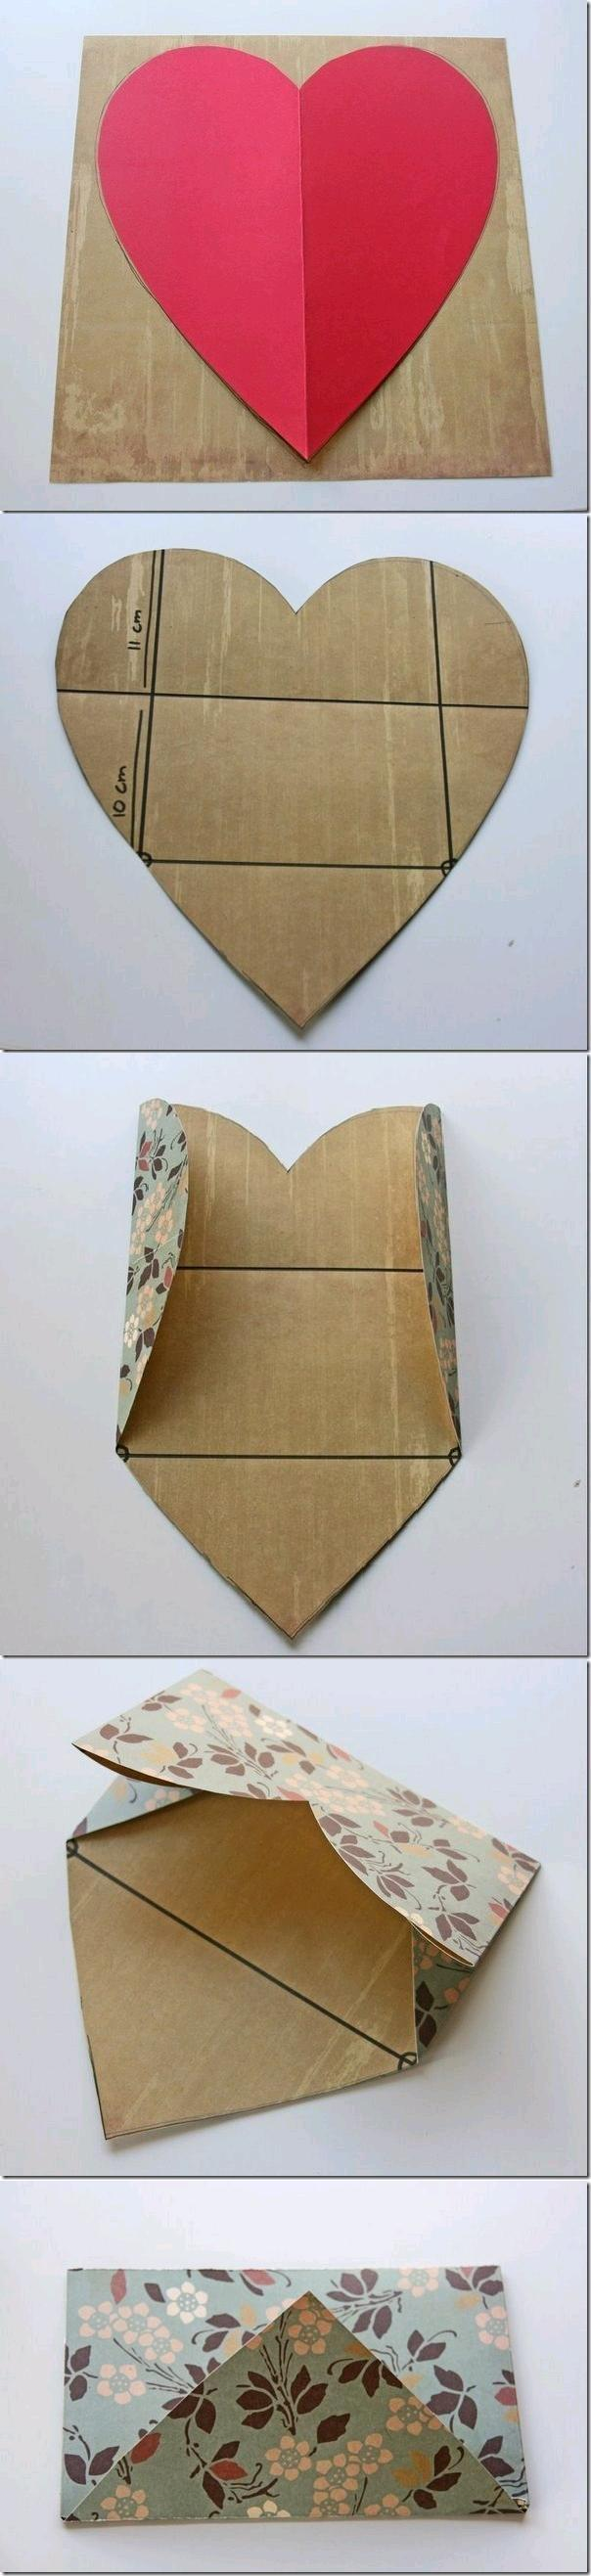 DIY Easy Envelope from Heart Shaped Paper 1